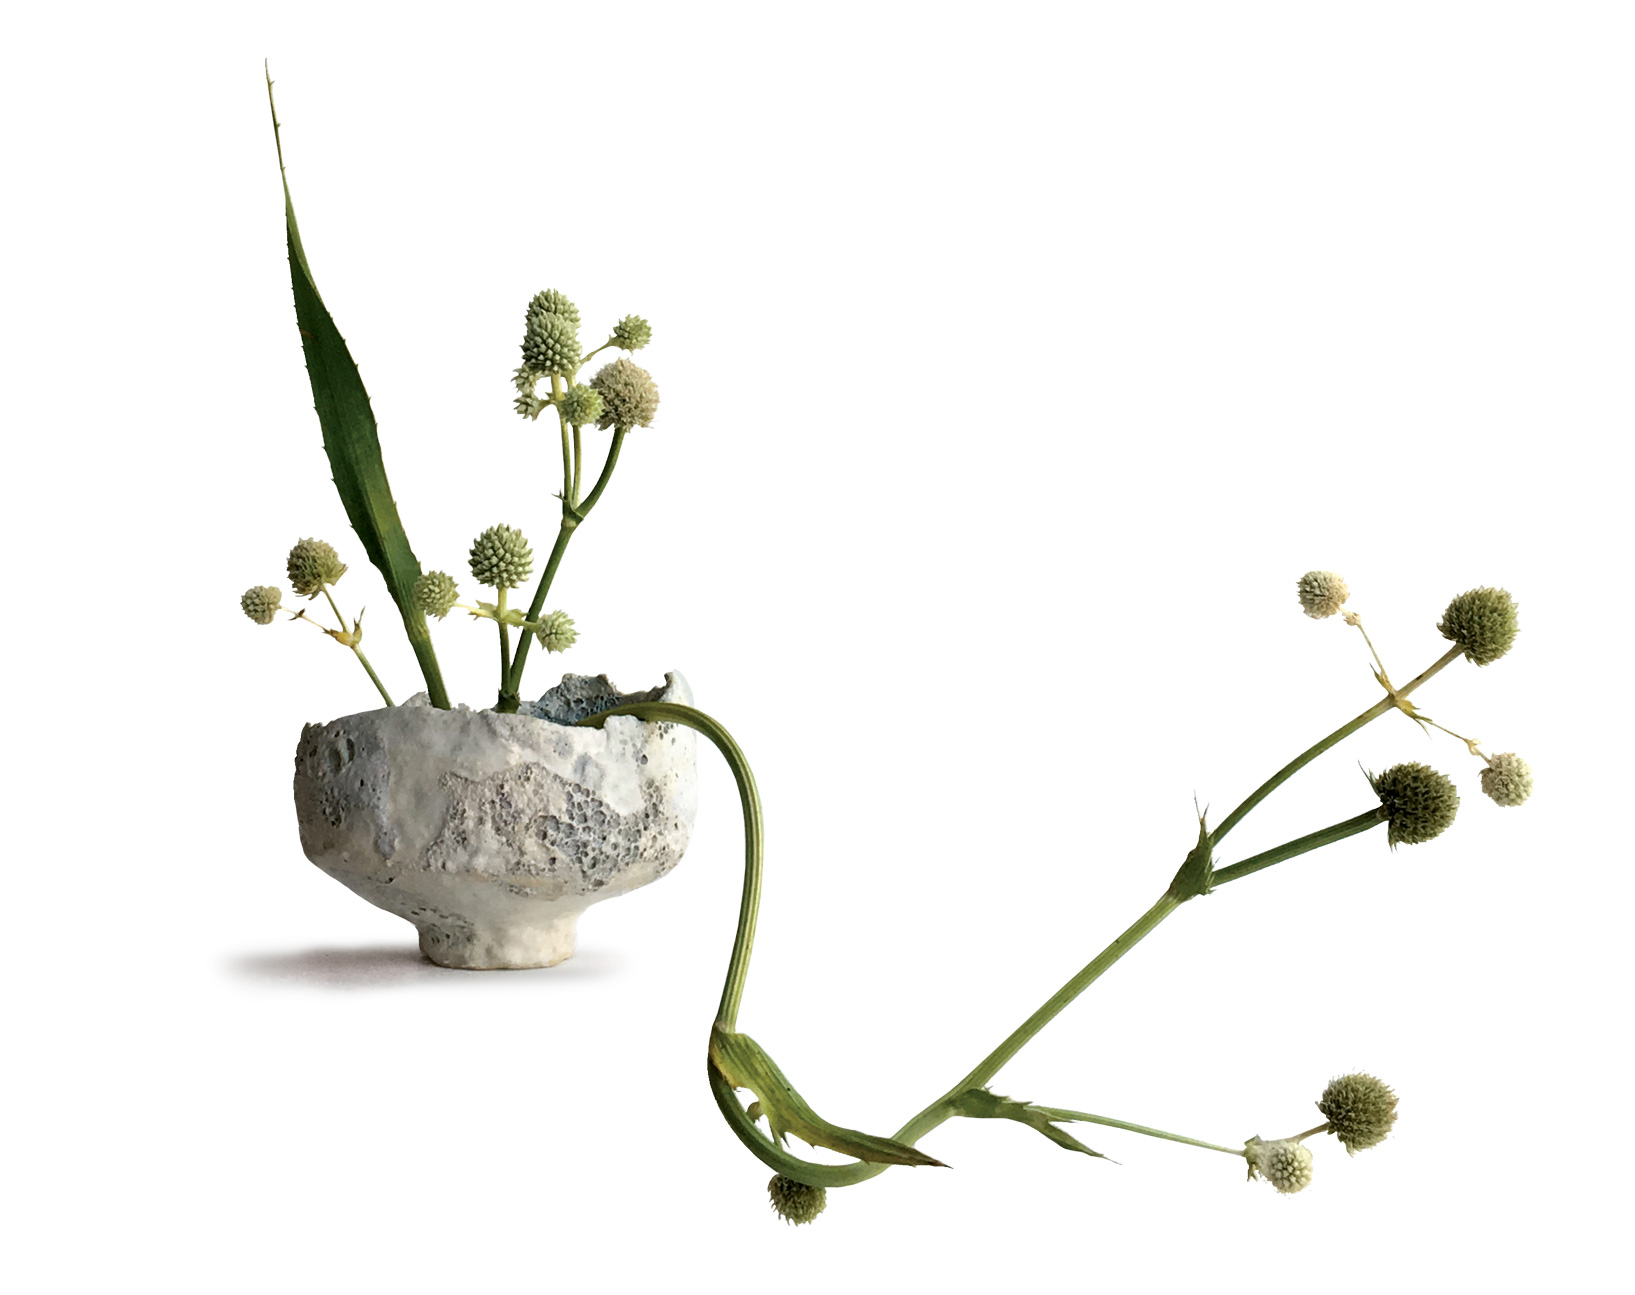 Simone Bodmer-Turner. Lichen Chawan. Sculpture body, white slip, crater and lava glazes. 6 x 6 x 5 in. Photograph by Nic Newcomb, 2017. Florals by Elevine Berge for Saipua.